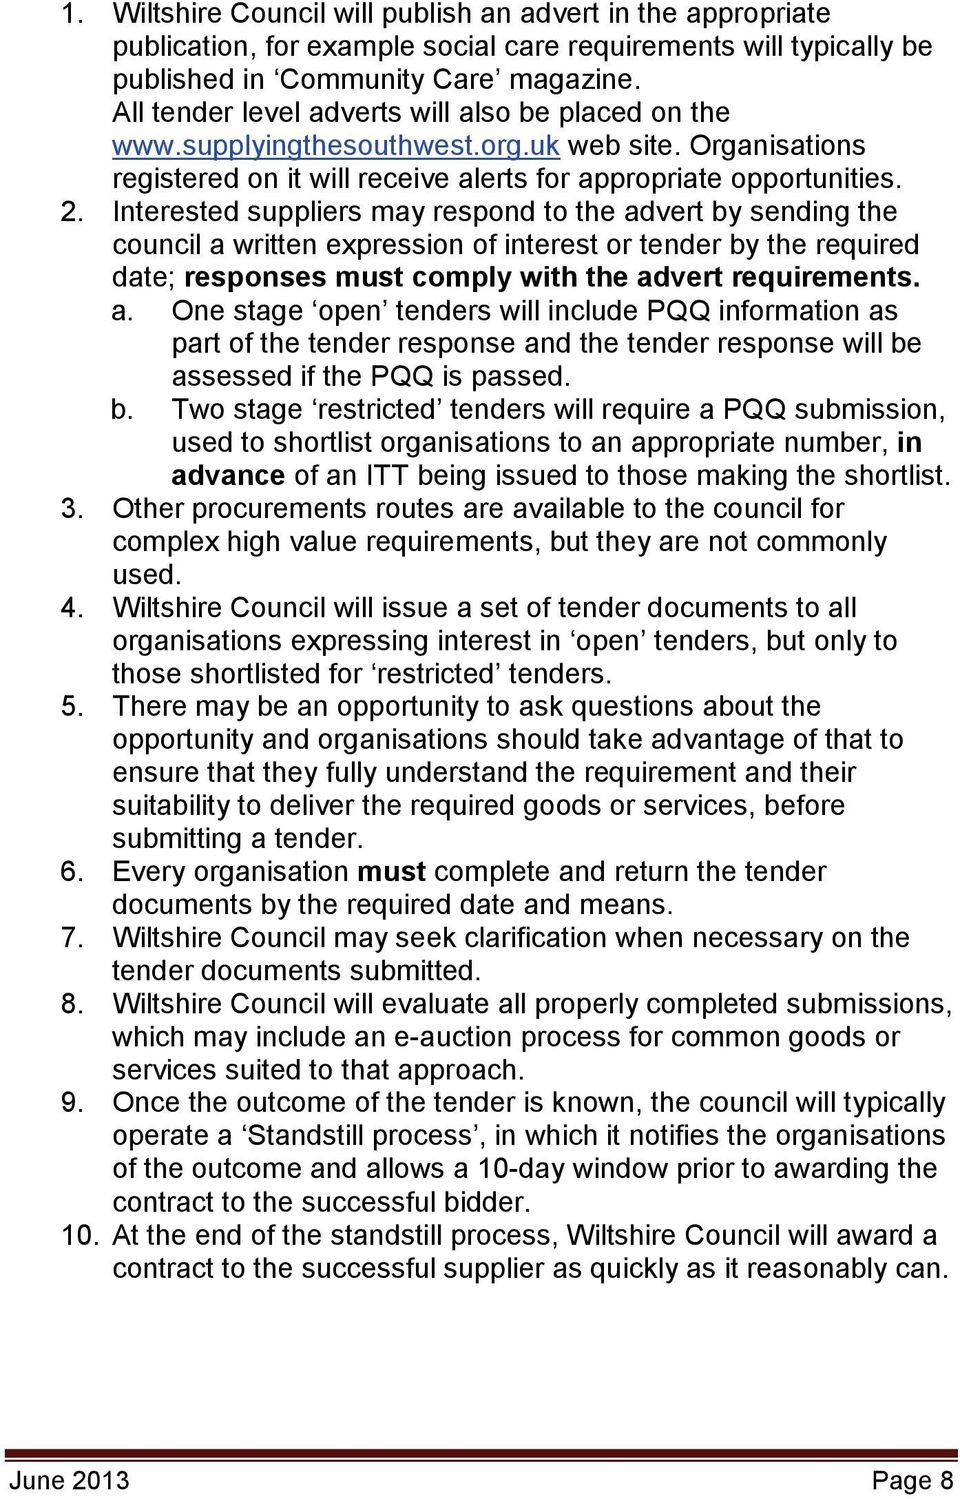 Interested suppliers may respond to the advert by sending the council a written expression of interest or tender by the required date; responses must comply with the advert requirements. a. One stage open tenders will include PQQ information as part of the tender response and the tender response will be assessed if the PQQ is passed.